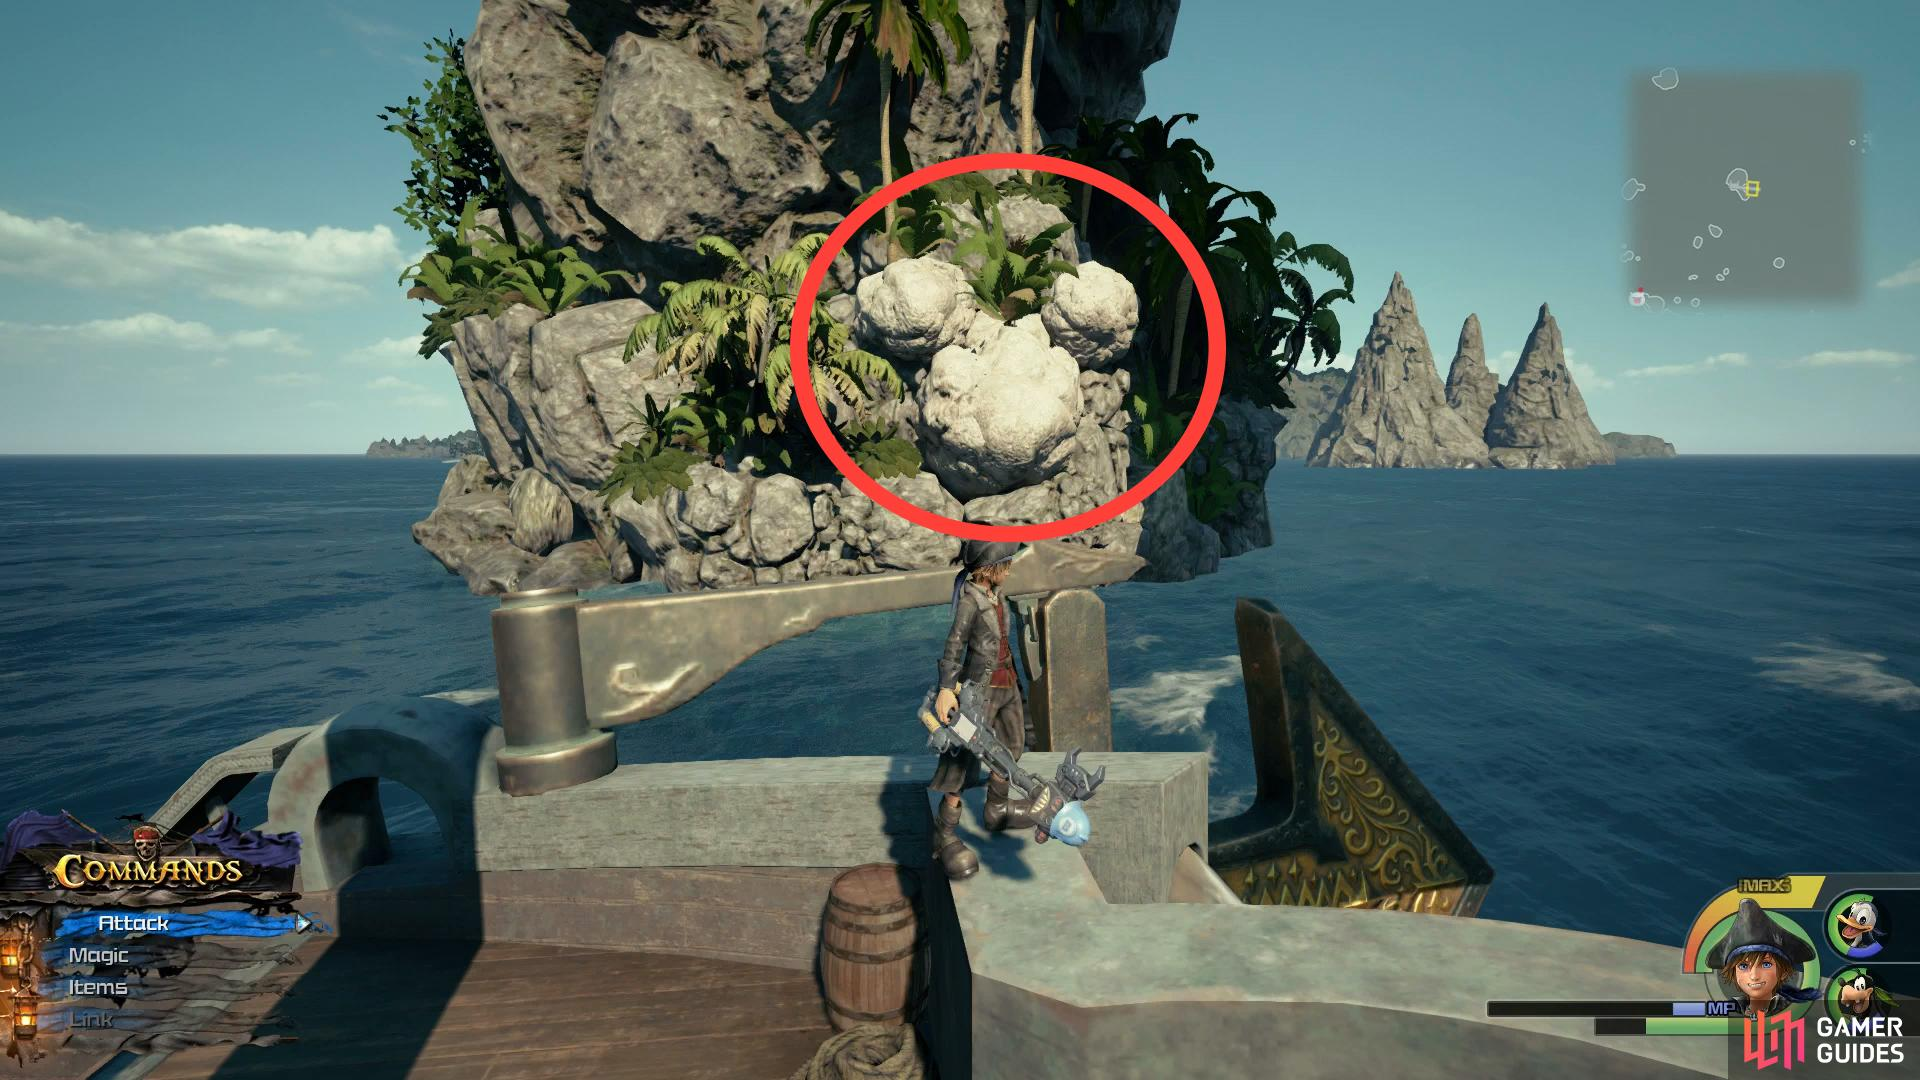 Sail under the archway of Horeshoe Island to find this Lucky Emblem